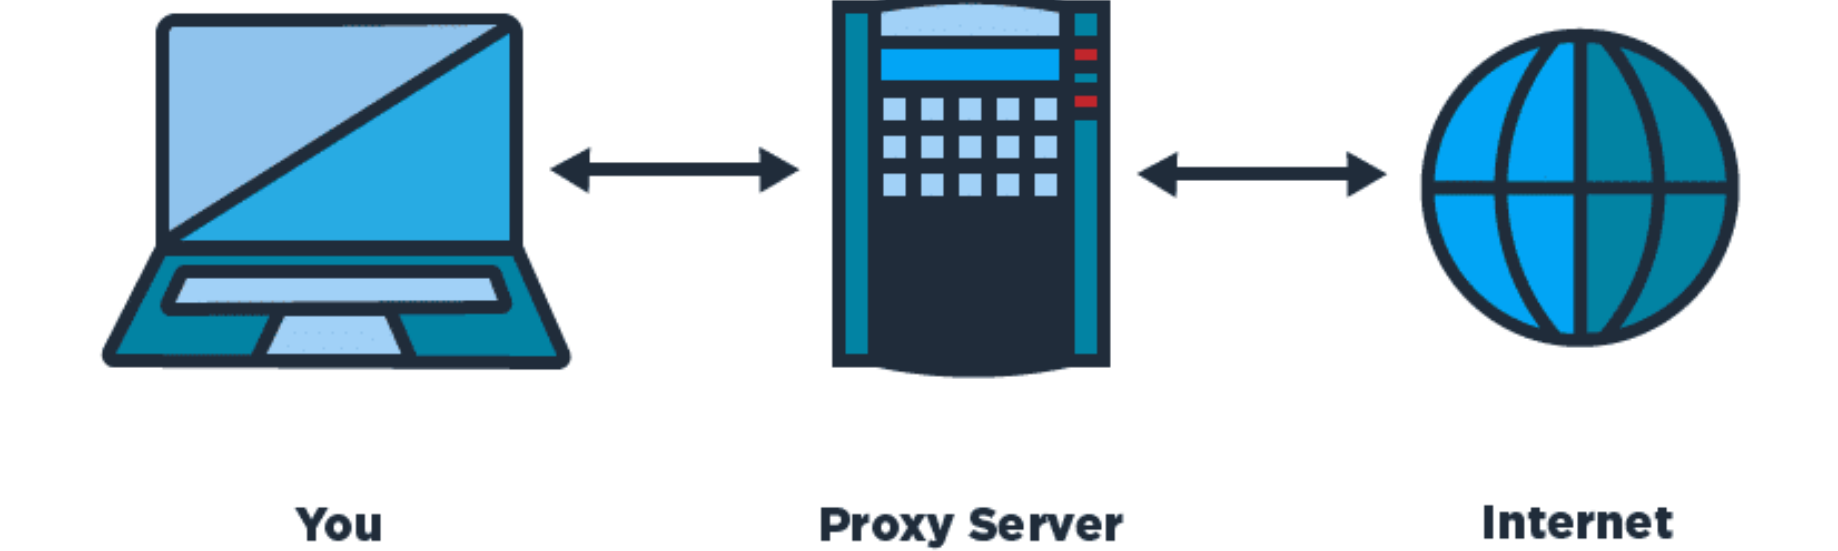 What is proxy server? - System Design Blog - Medium